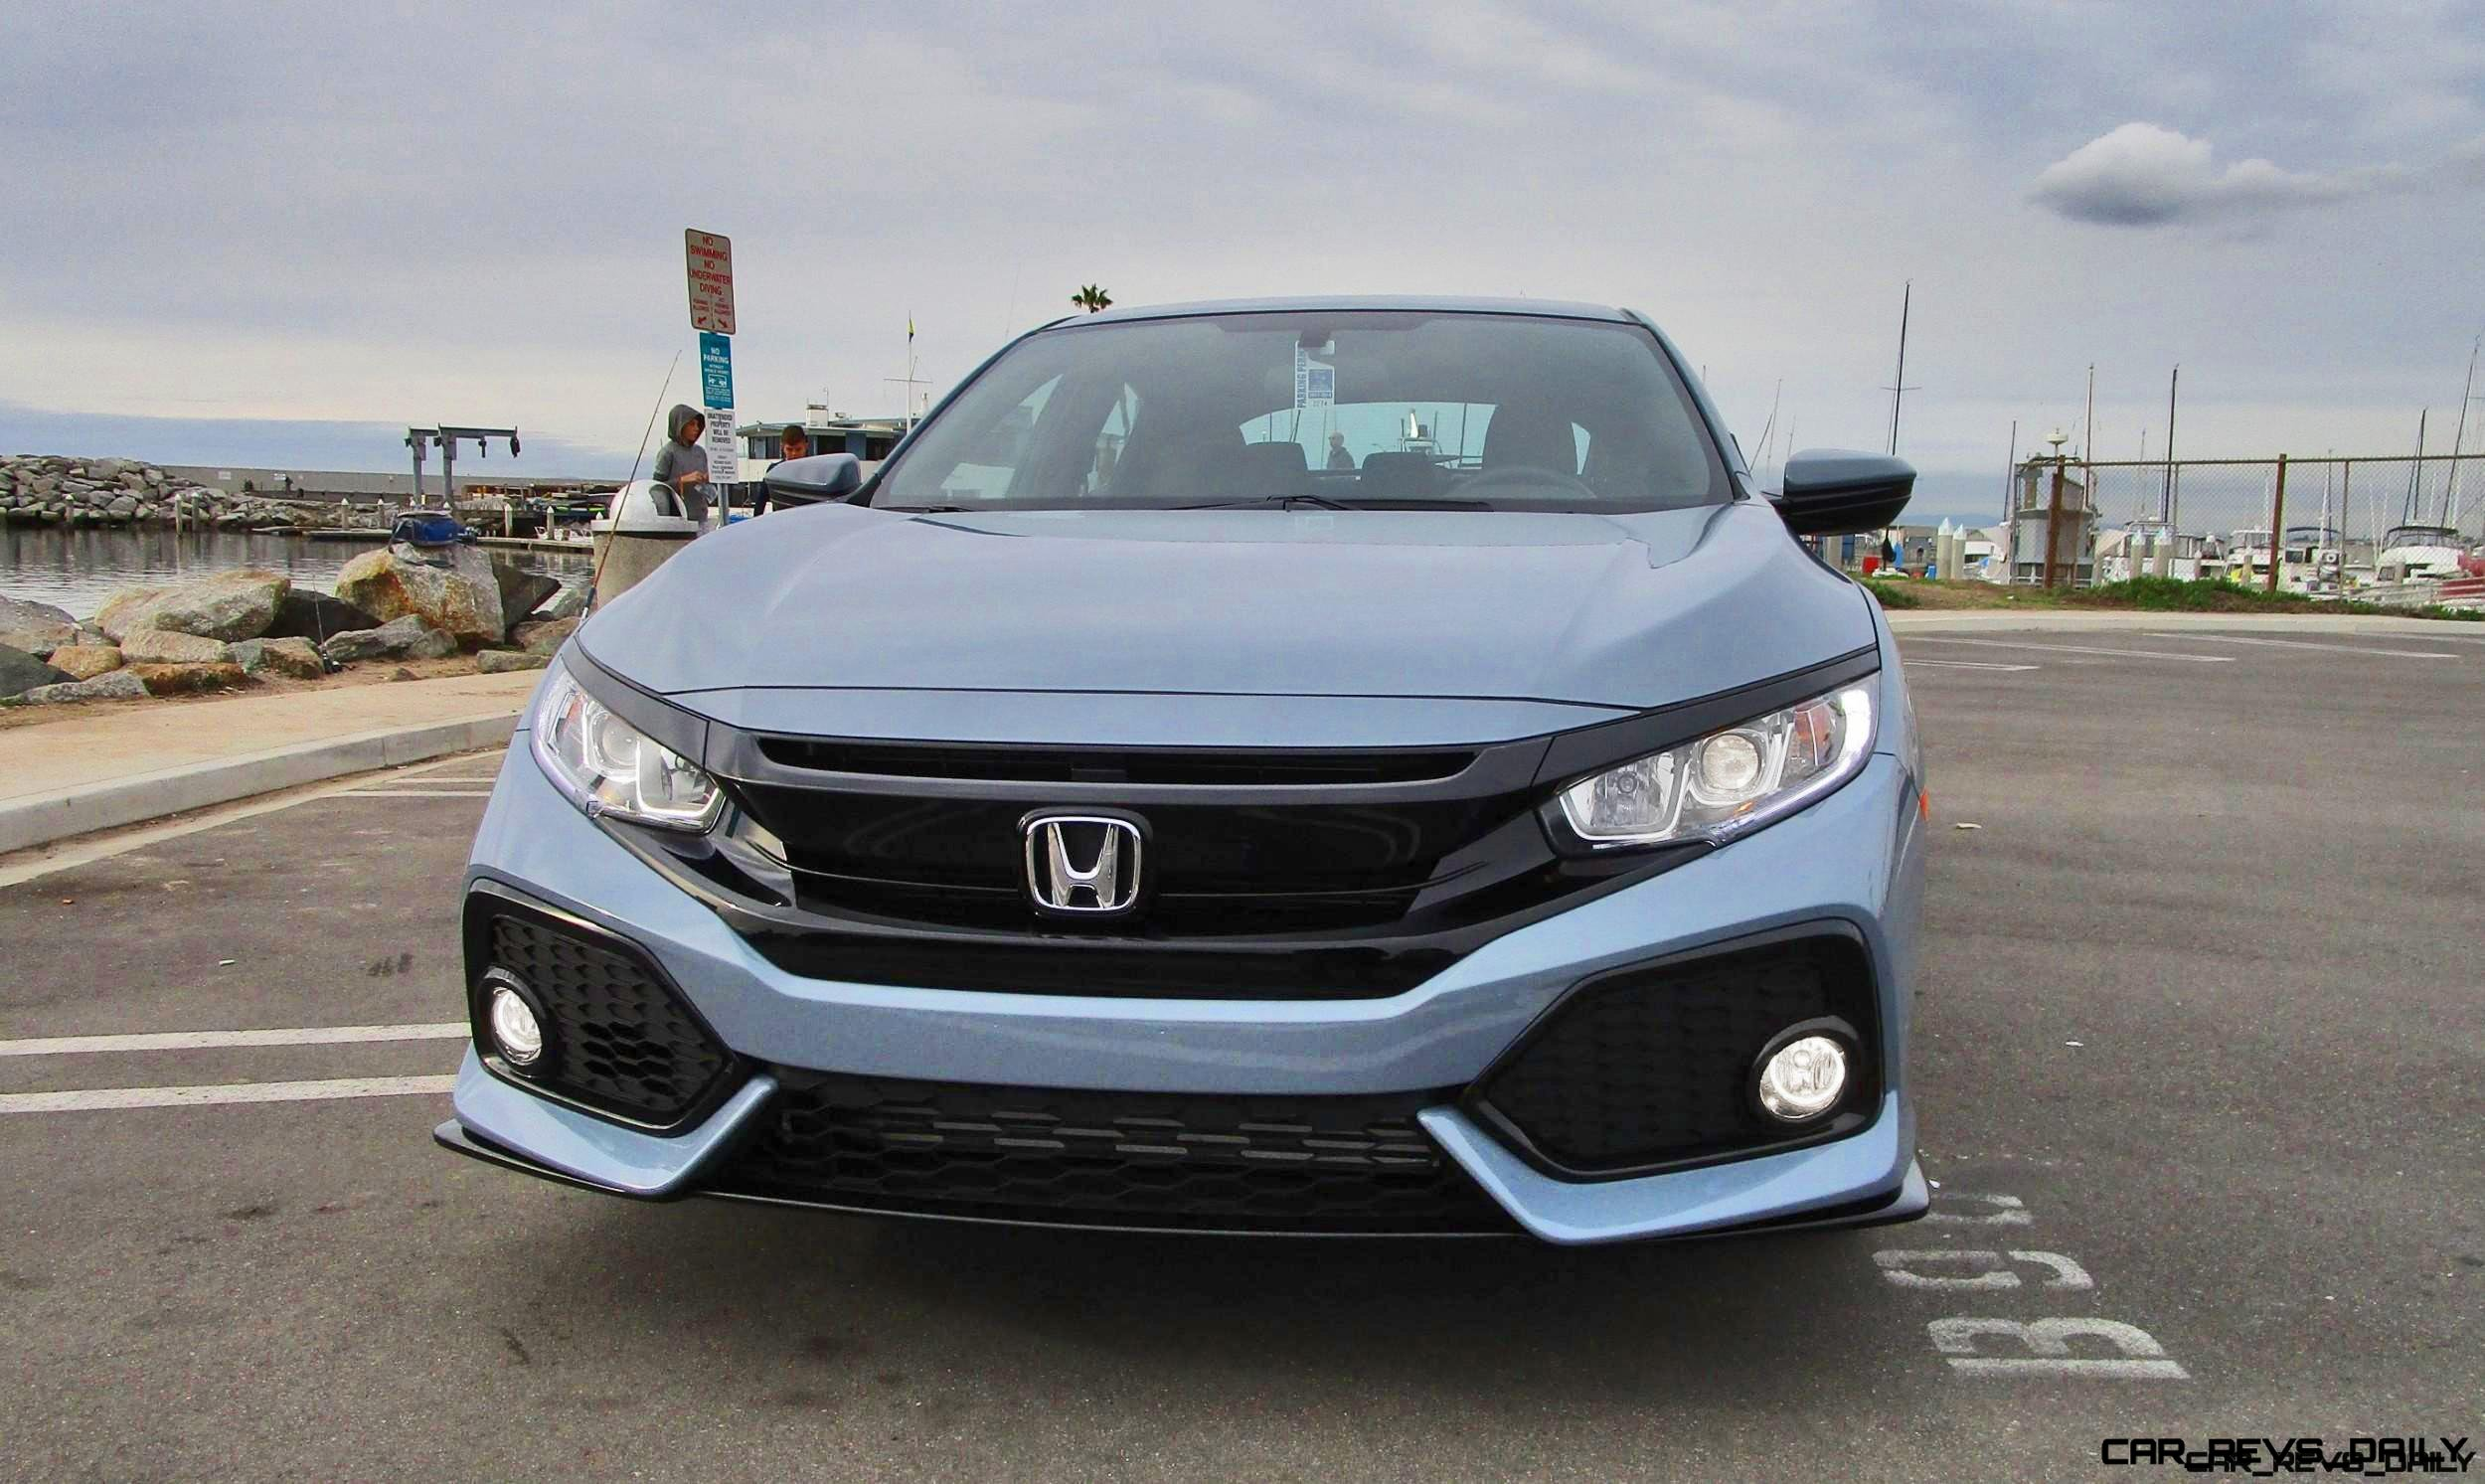 2017-Honda-Civic-Sport-5-Door-1sd